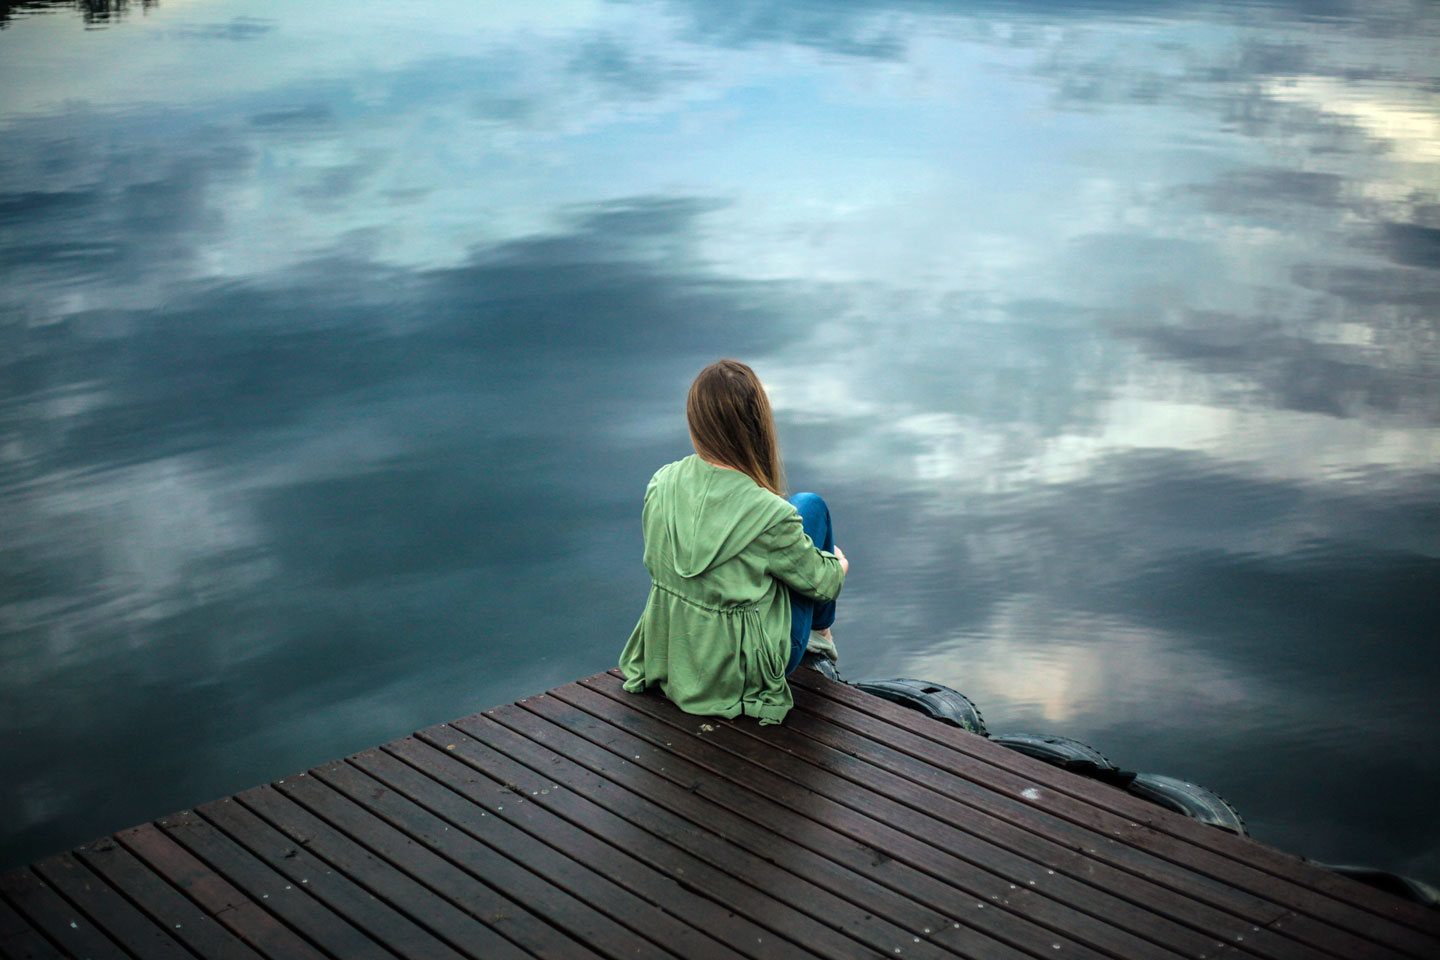 Woman sitting on a wooden dock overlooking the lake